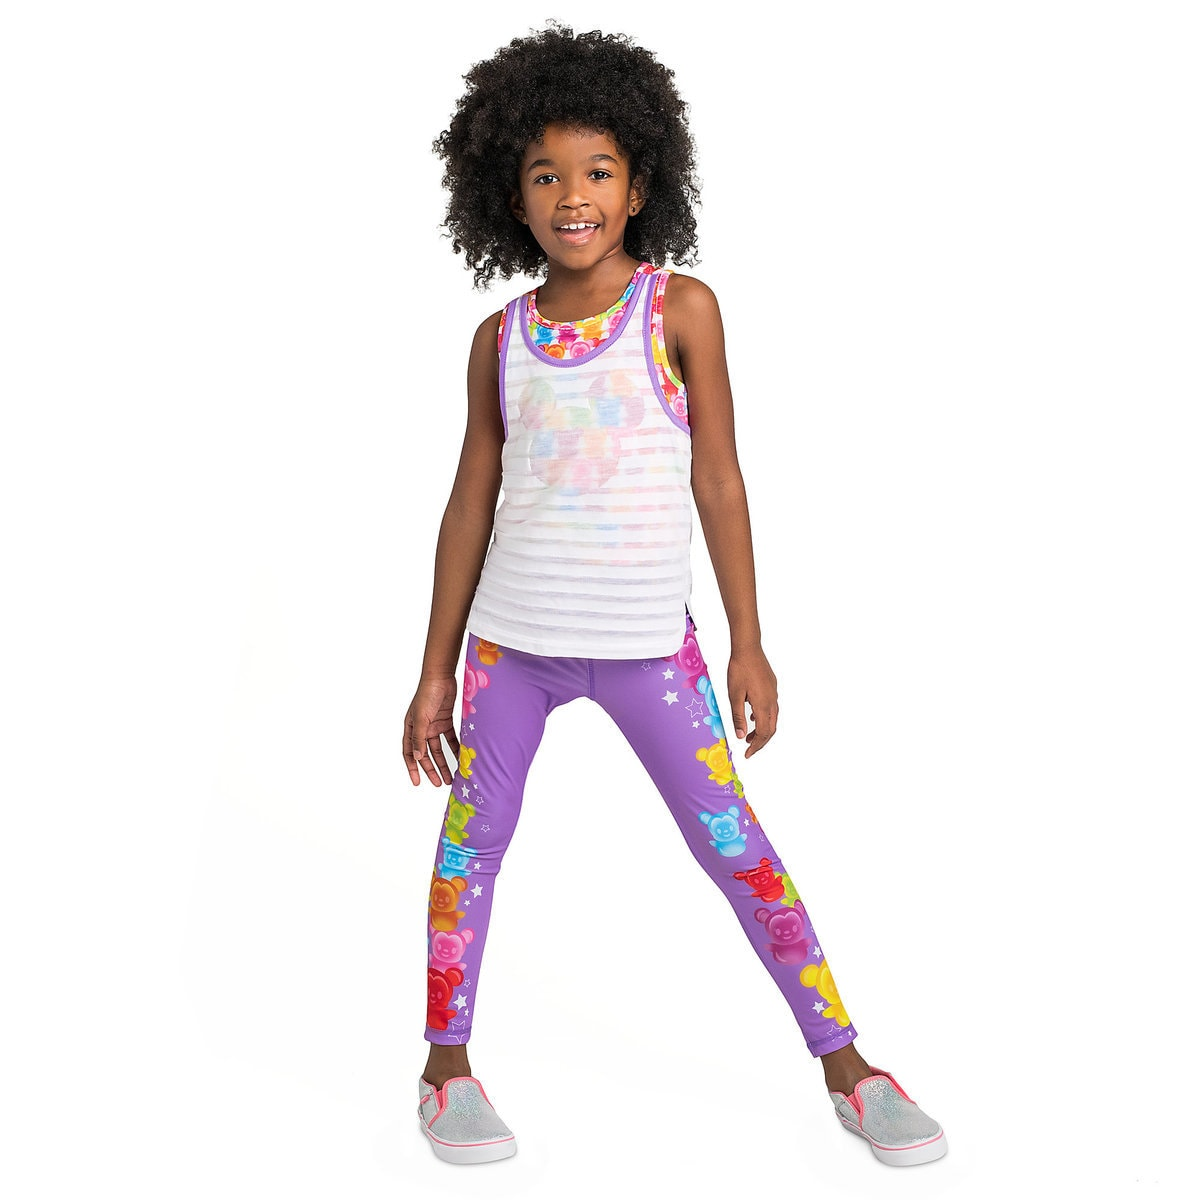 e6be8127b30396 Product Image of Mickey and Minnie Mouse Tank Top and Leggings Set for  Girls # 2